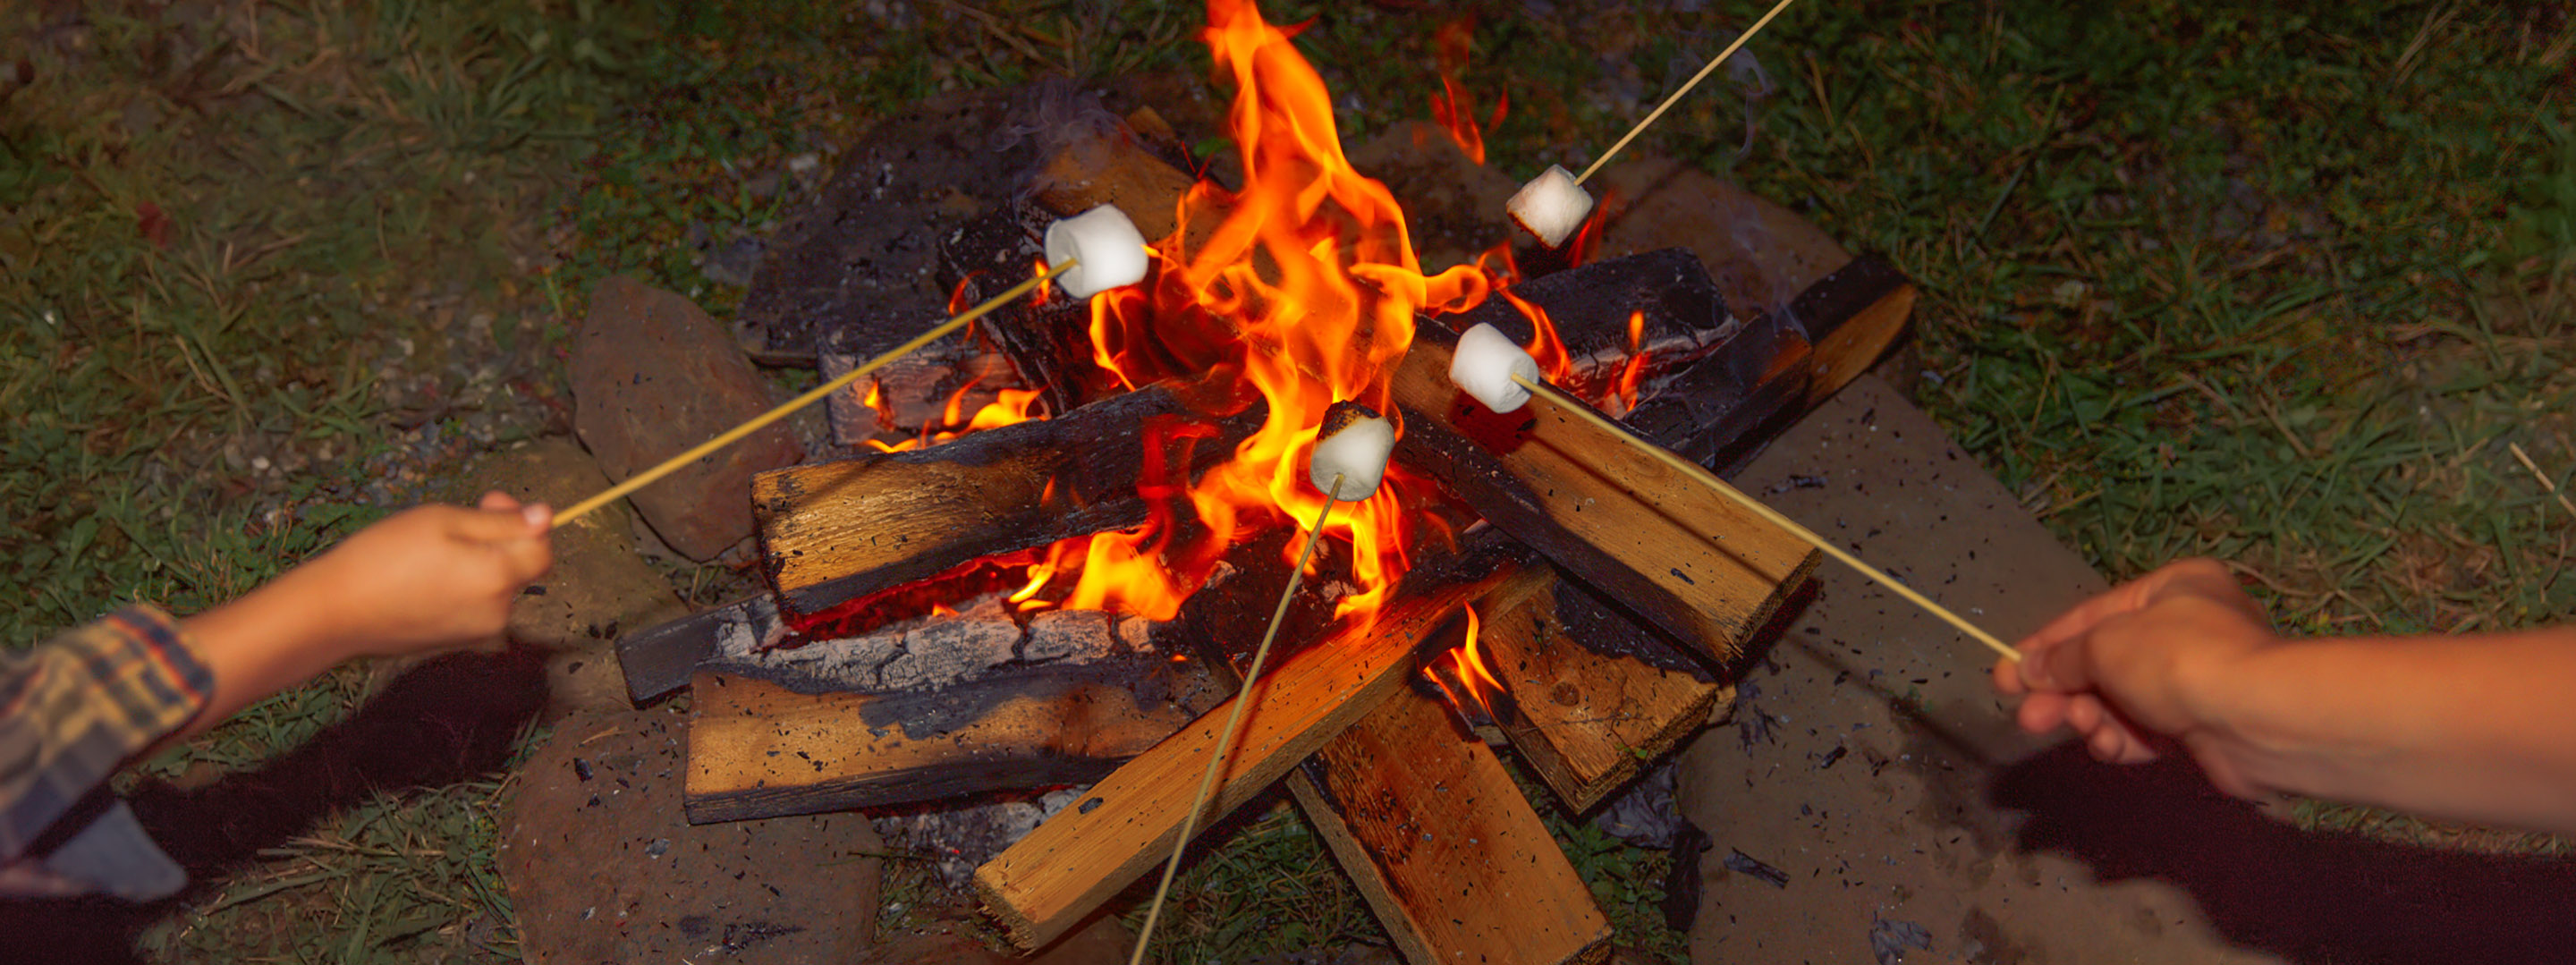 Celebrate the end of summer at Back to School Campfire